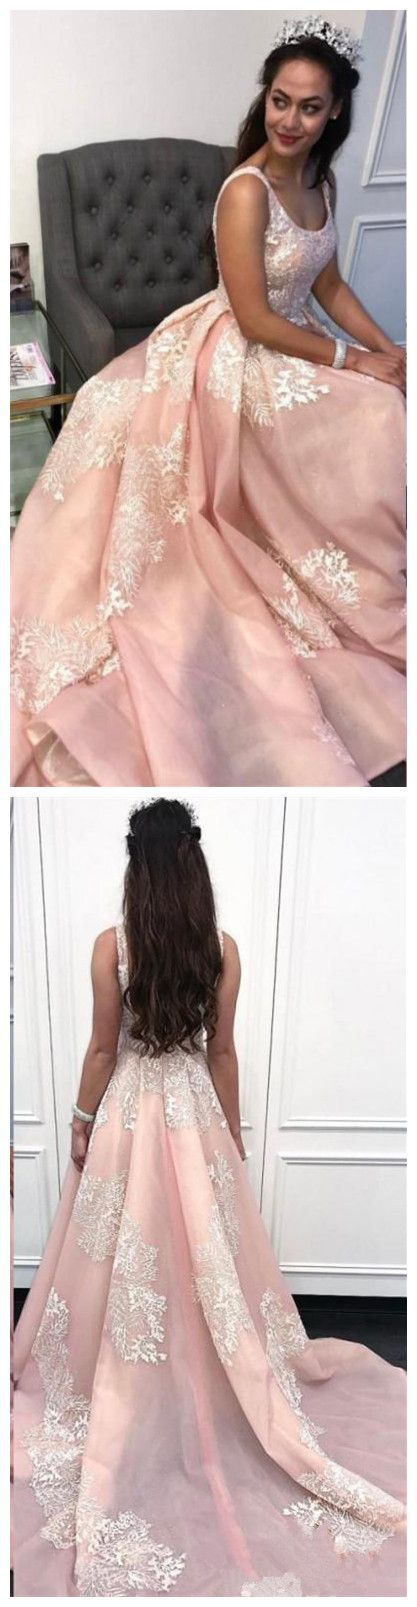 Sexy O-Neck Appliques A-Line Prom Dresses,Long Prom Dresses,Green Prom Dresses, Evening Dress Prom Gowns, Formal Women Dress,Prom Dress, D0129